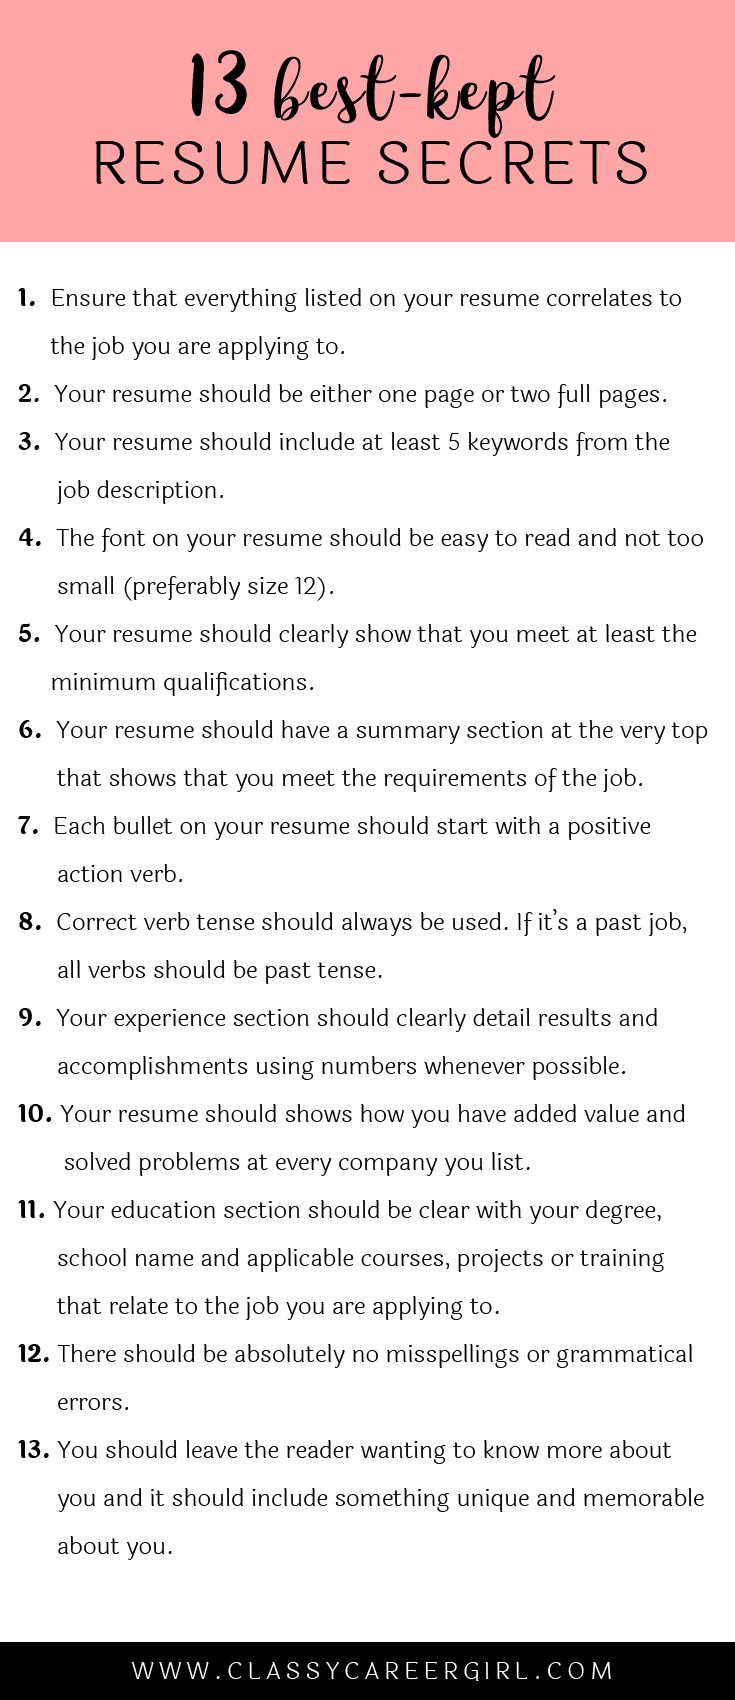 Opposenewapstandardsus  Terrific  Ideas About Resume On Pinterest  Cv Format Resume Cv And  With Extraordinary Some Hiring Managers Will Toss Your Resume Out If You Dont Know These  With Nice Resume For Graphic Designer Also Type A Resume In Addition What Are Good Skills To List On A Resume And Business Owner Resume Sample As Well As Resume Sample Pdf Additionally What Is A Good Resume From Pinterestcom With Opposenewapstandardsus  Extraordinary  Ideas About Resume On Pinterest  Cv Format Resume Cv And  With Nice Some Hiring Managers Will Toss Your Resume Out If You Dont Know These  And Terrific Resume For Graphic Designer Also Type A Resume In Addition What Are Good Skills To List On A Resume From Pinterestcom